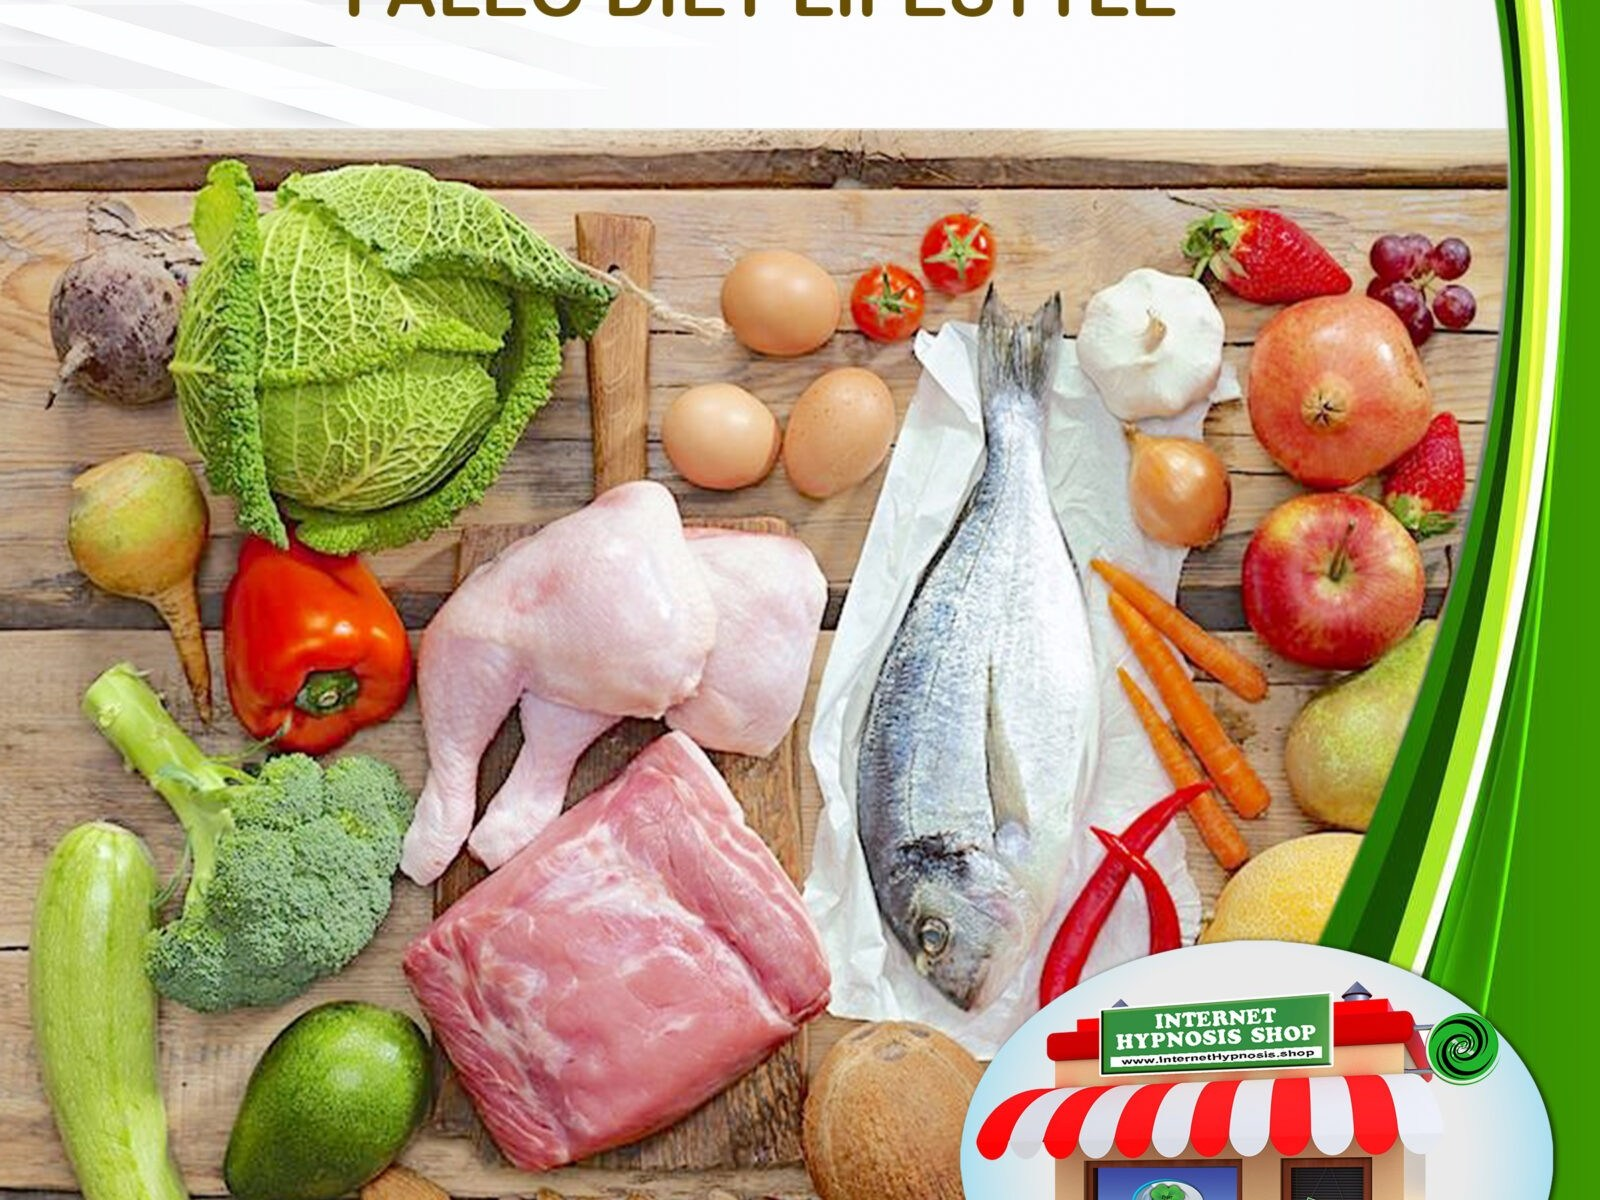 WELCOME A PALEO DIET LIFESTYLE CLASSIC